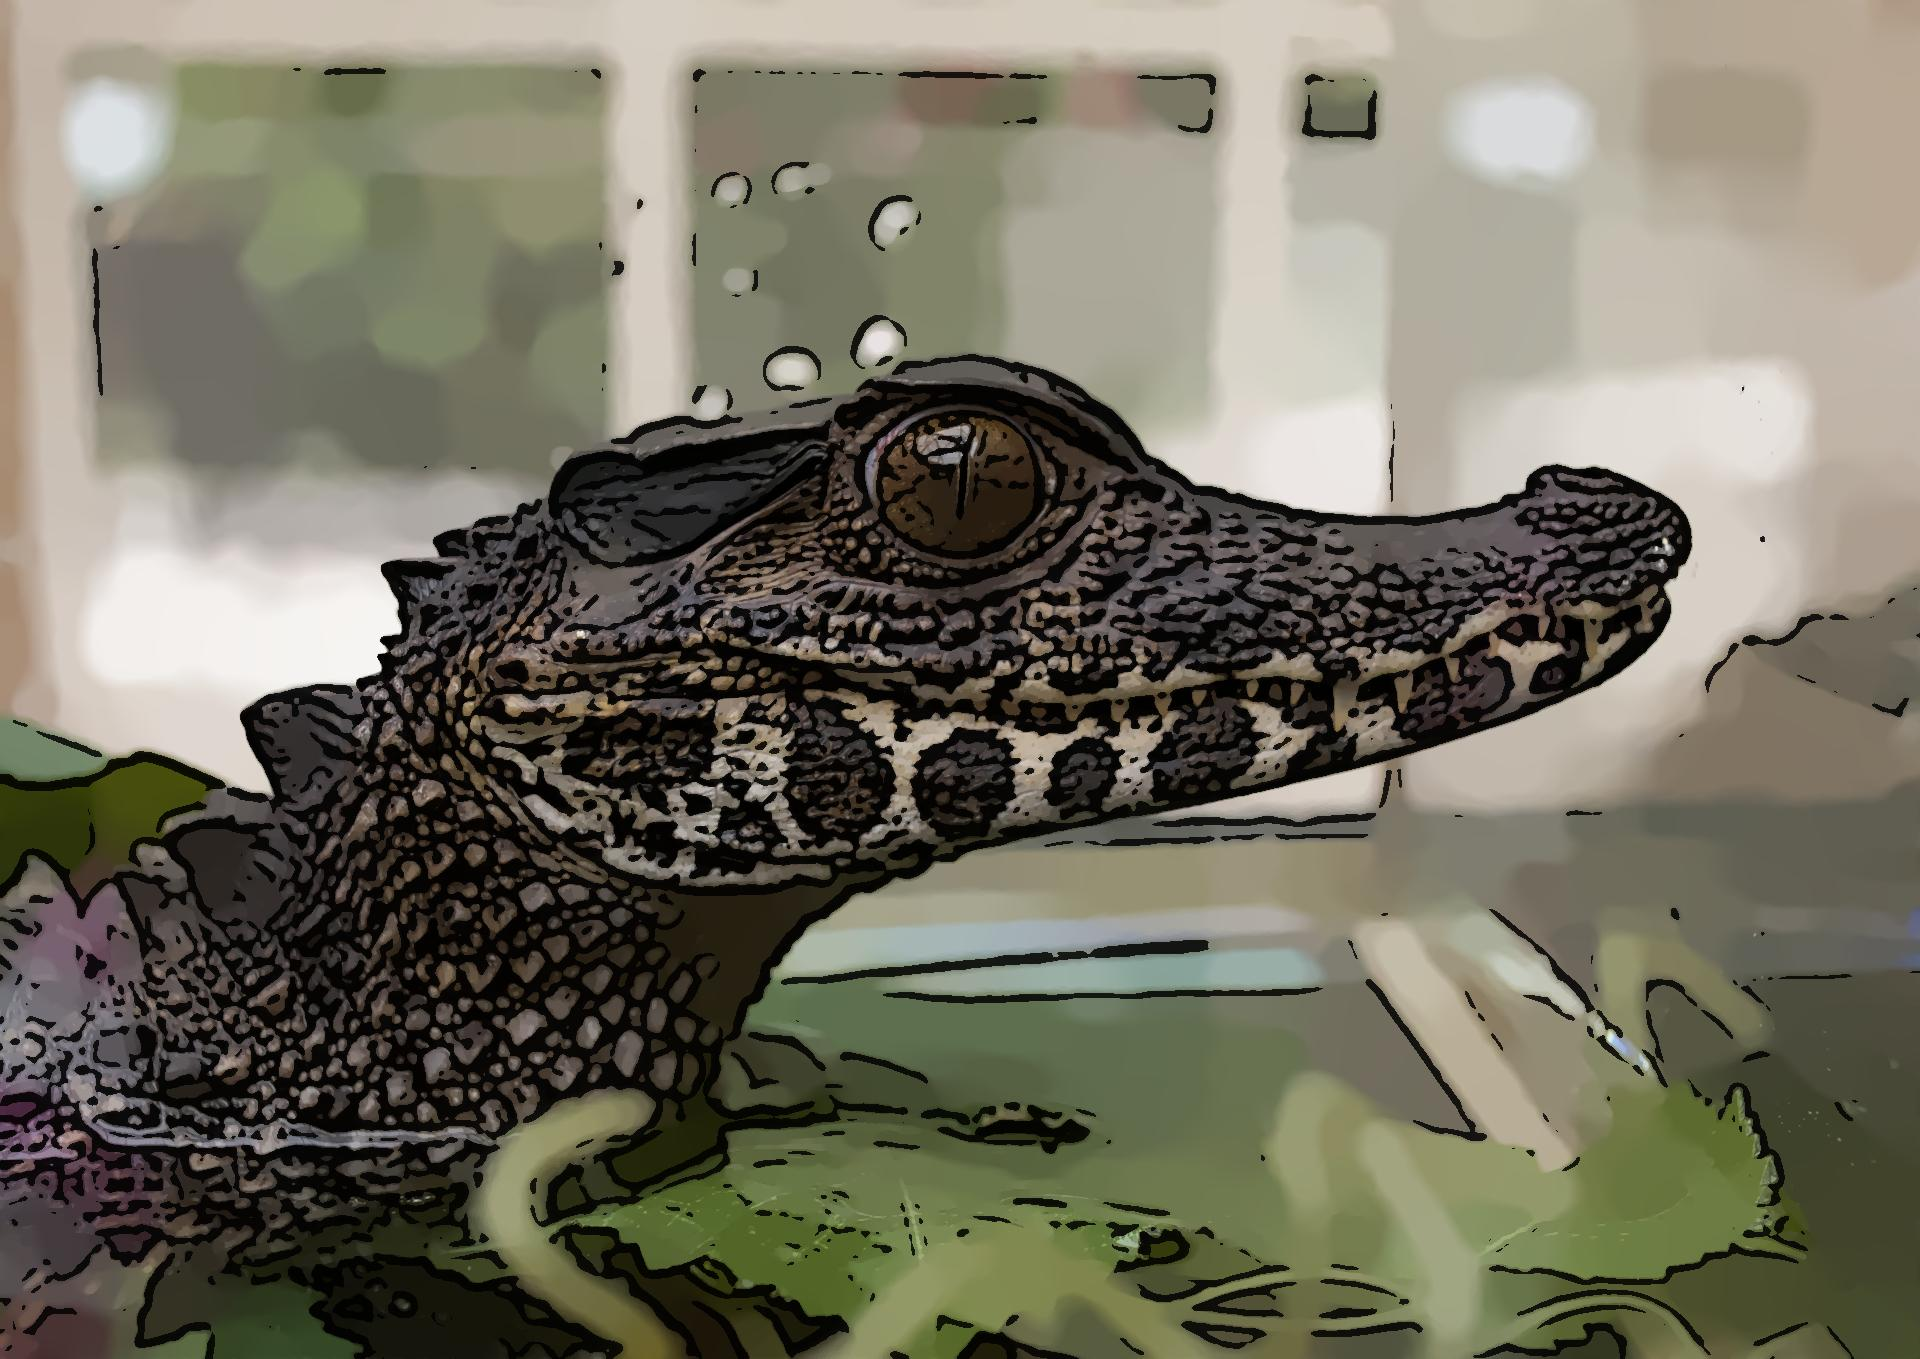 alligator_cartoonized